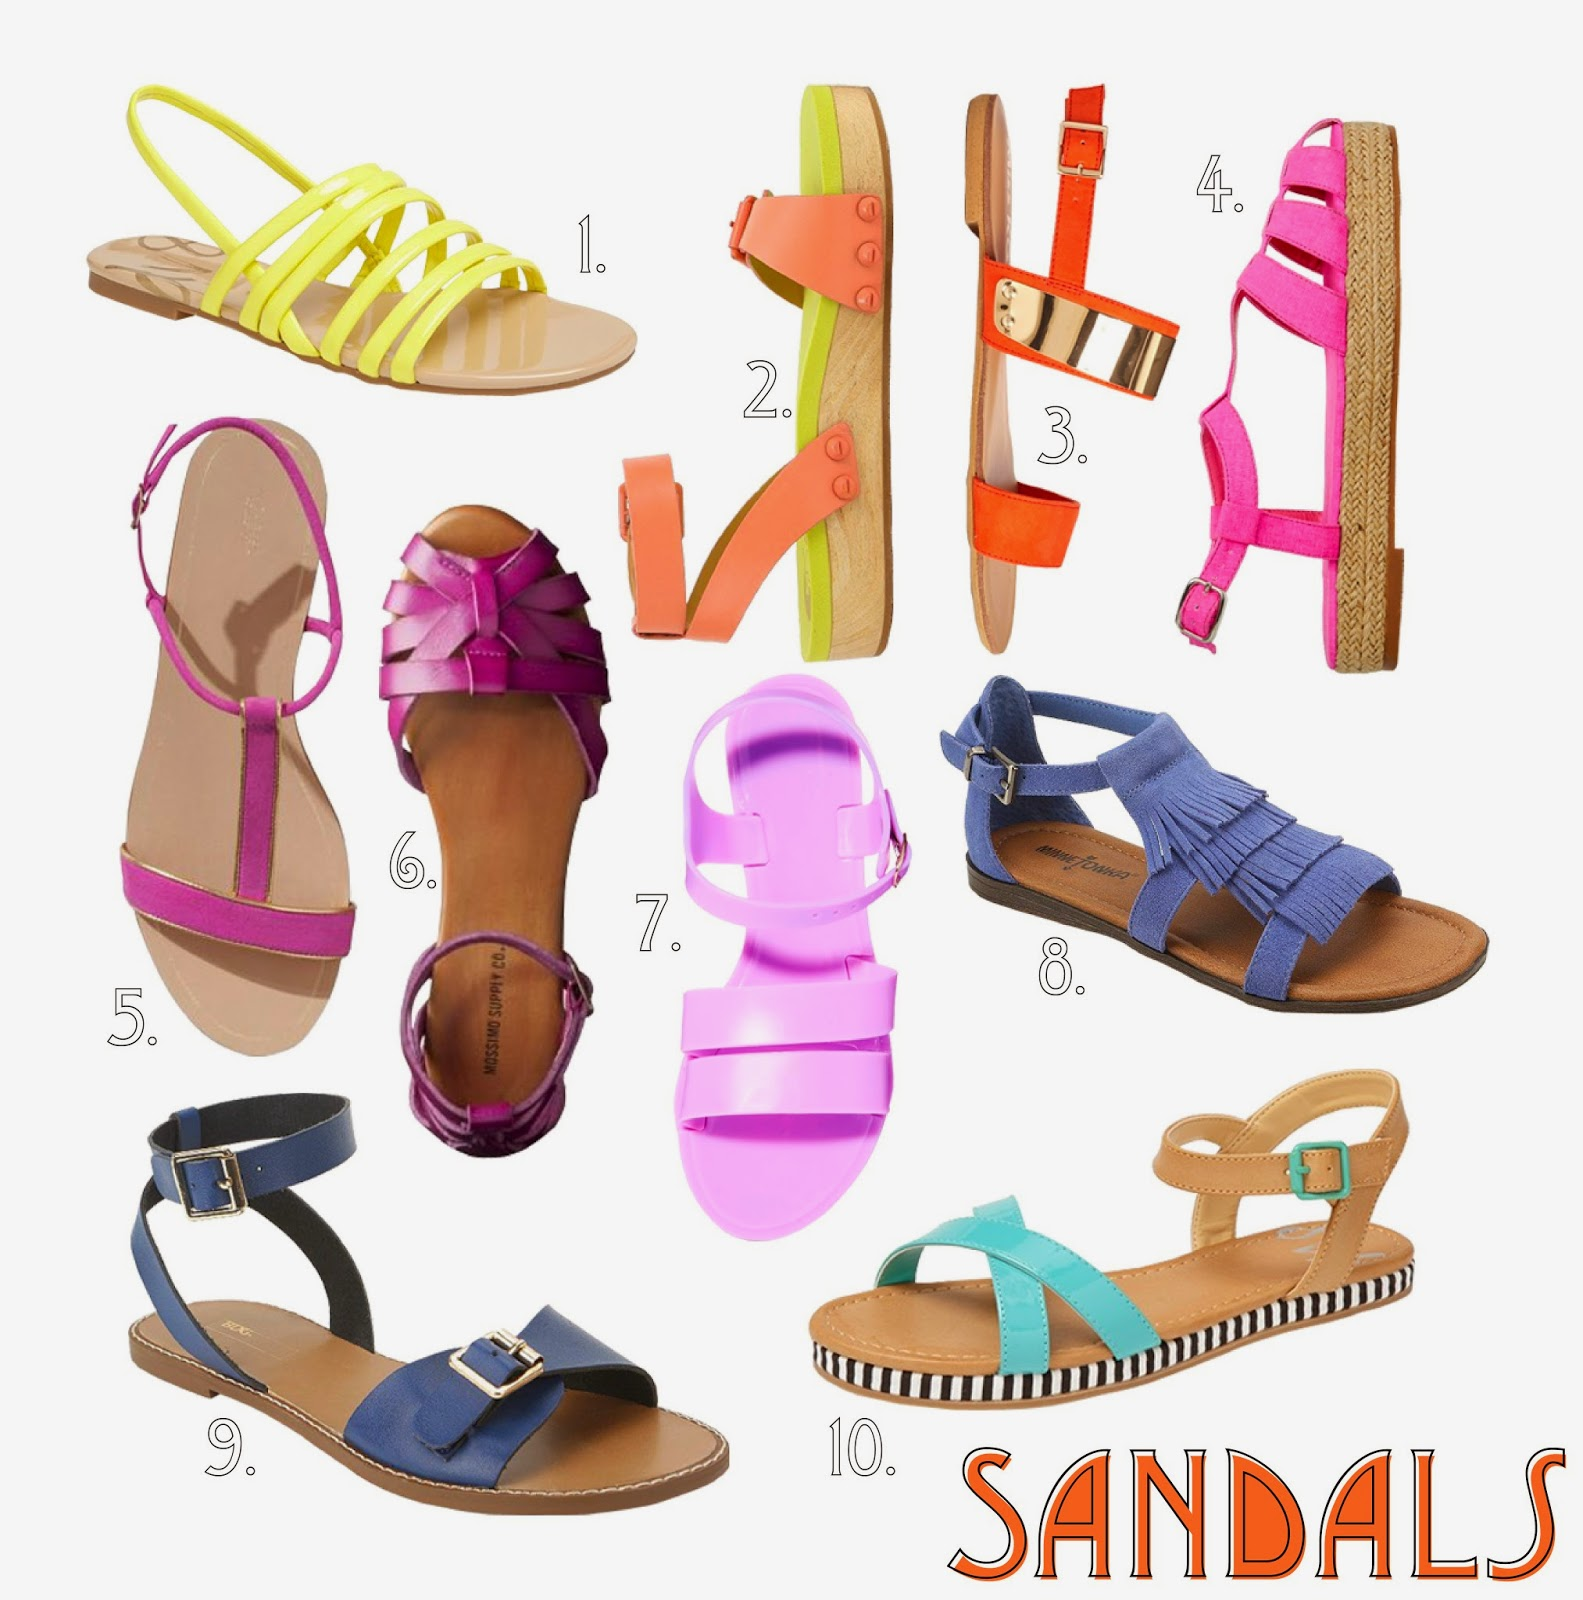 shopping-for-sandals, sandal-collage